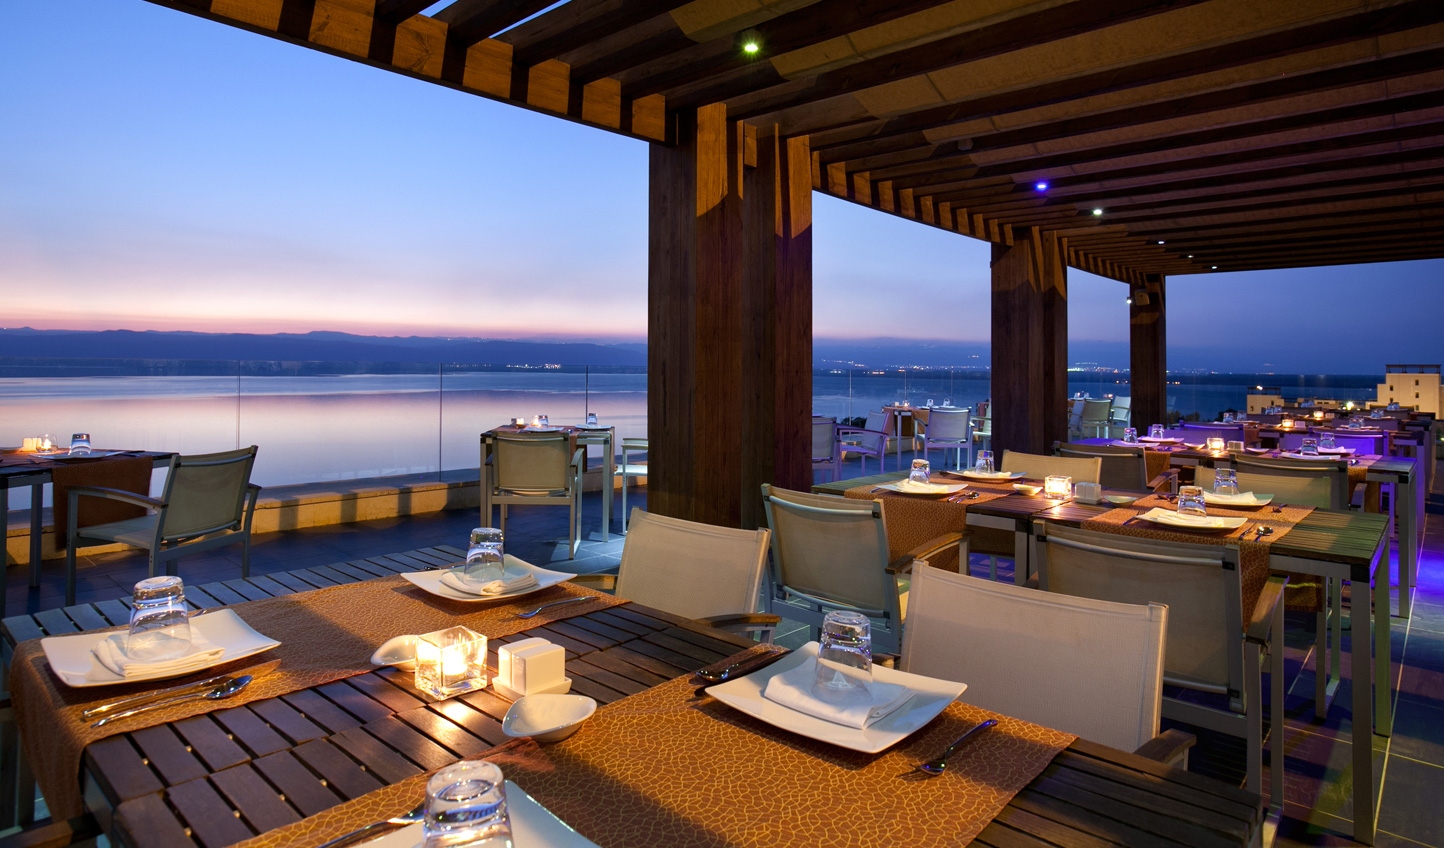 Enjoy dinner at Codes Thai restaurant and watch the sun sink into the sea